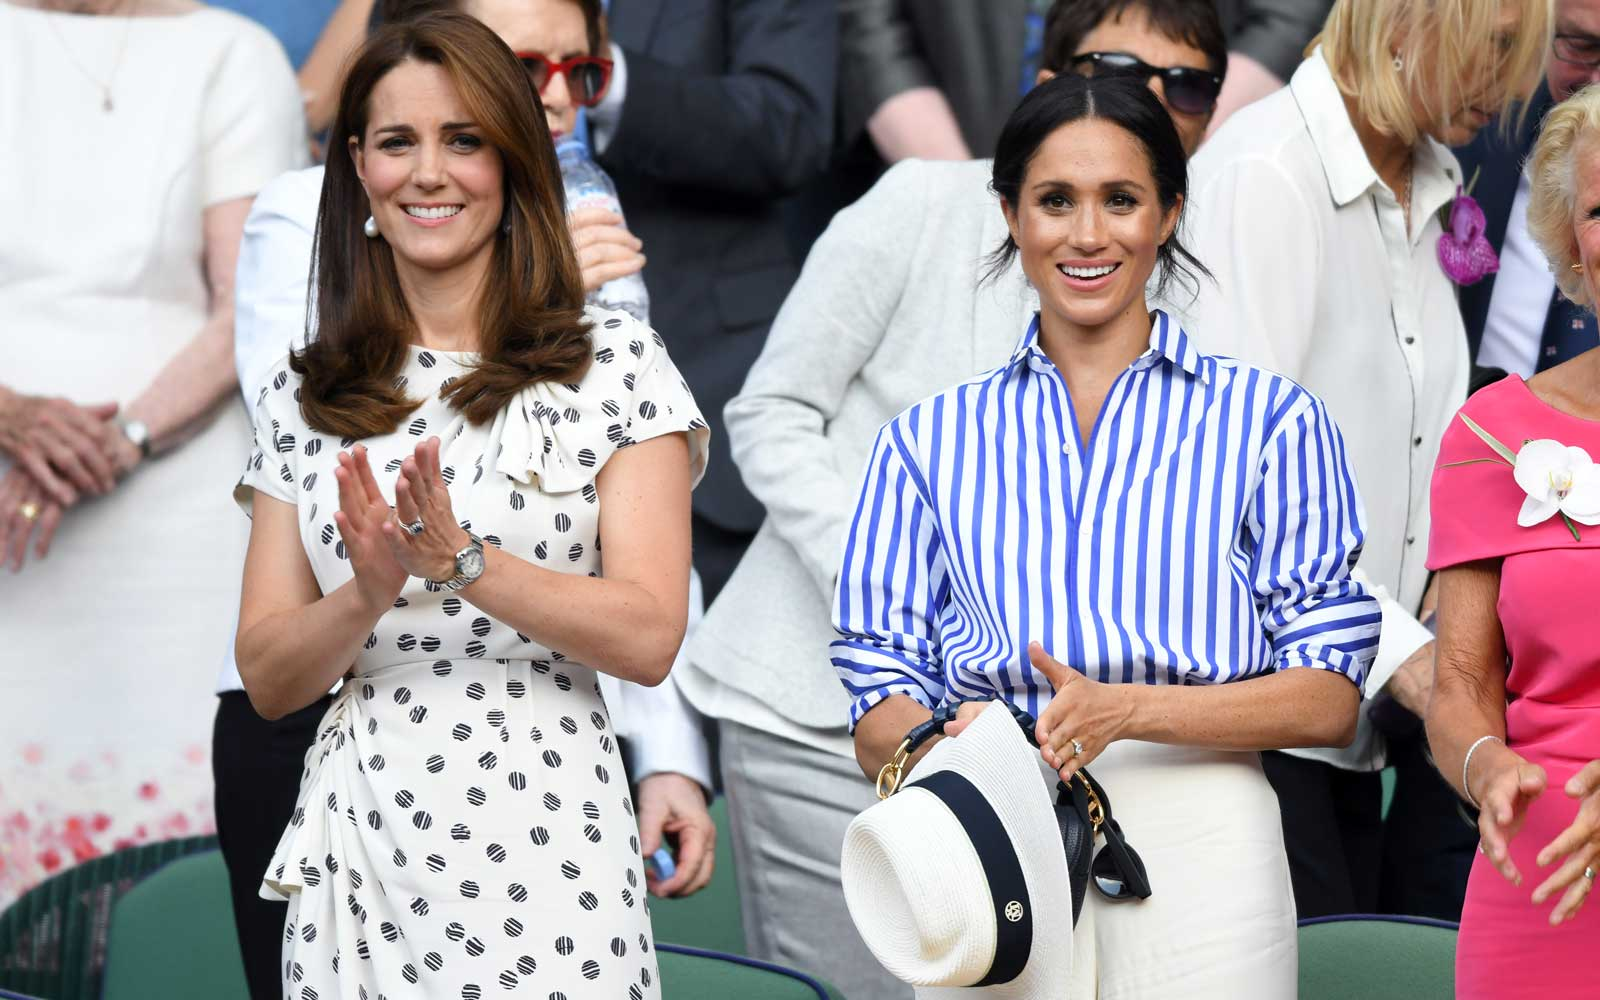 Meghan Markle holding her hat at Wimbledon